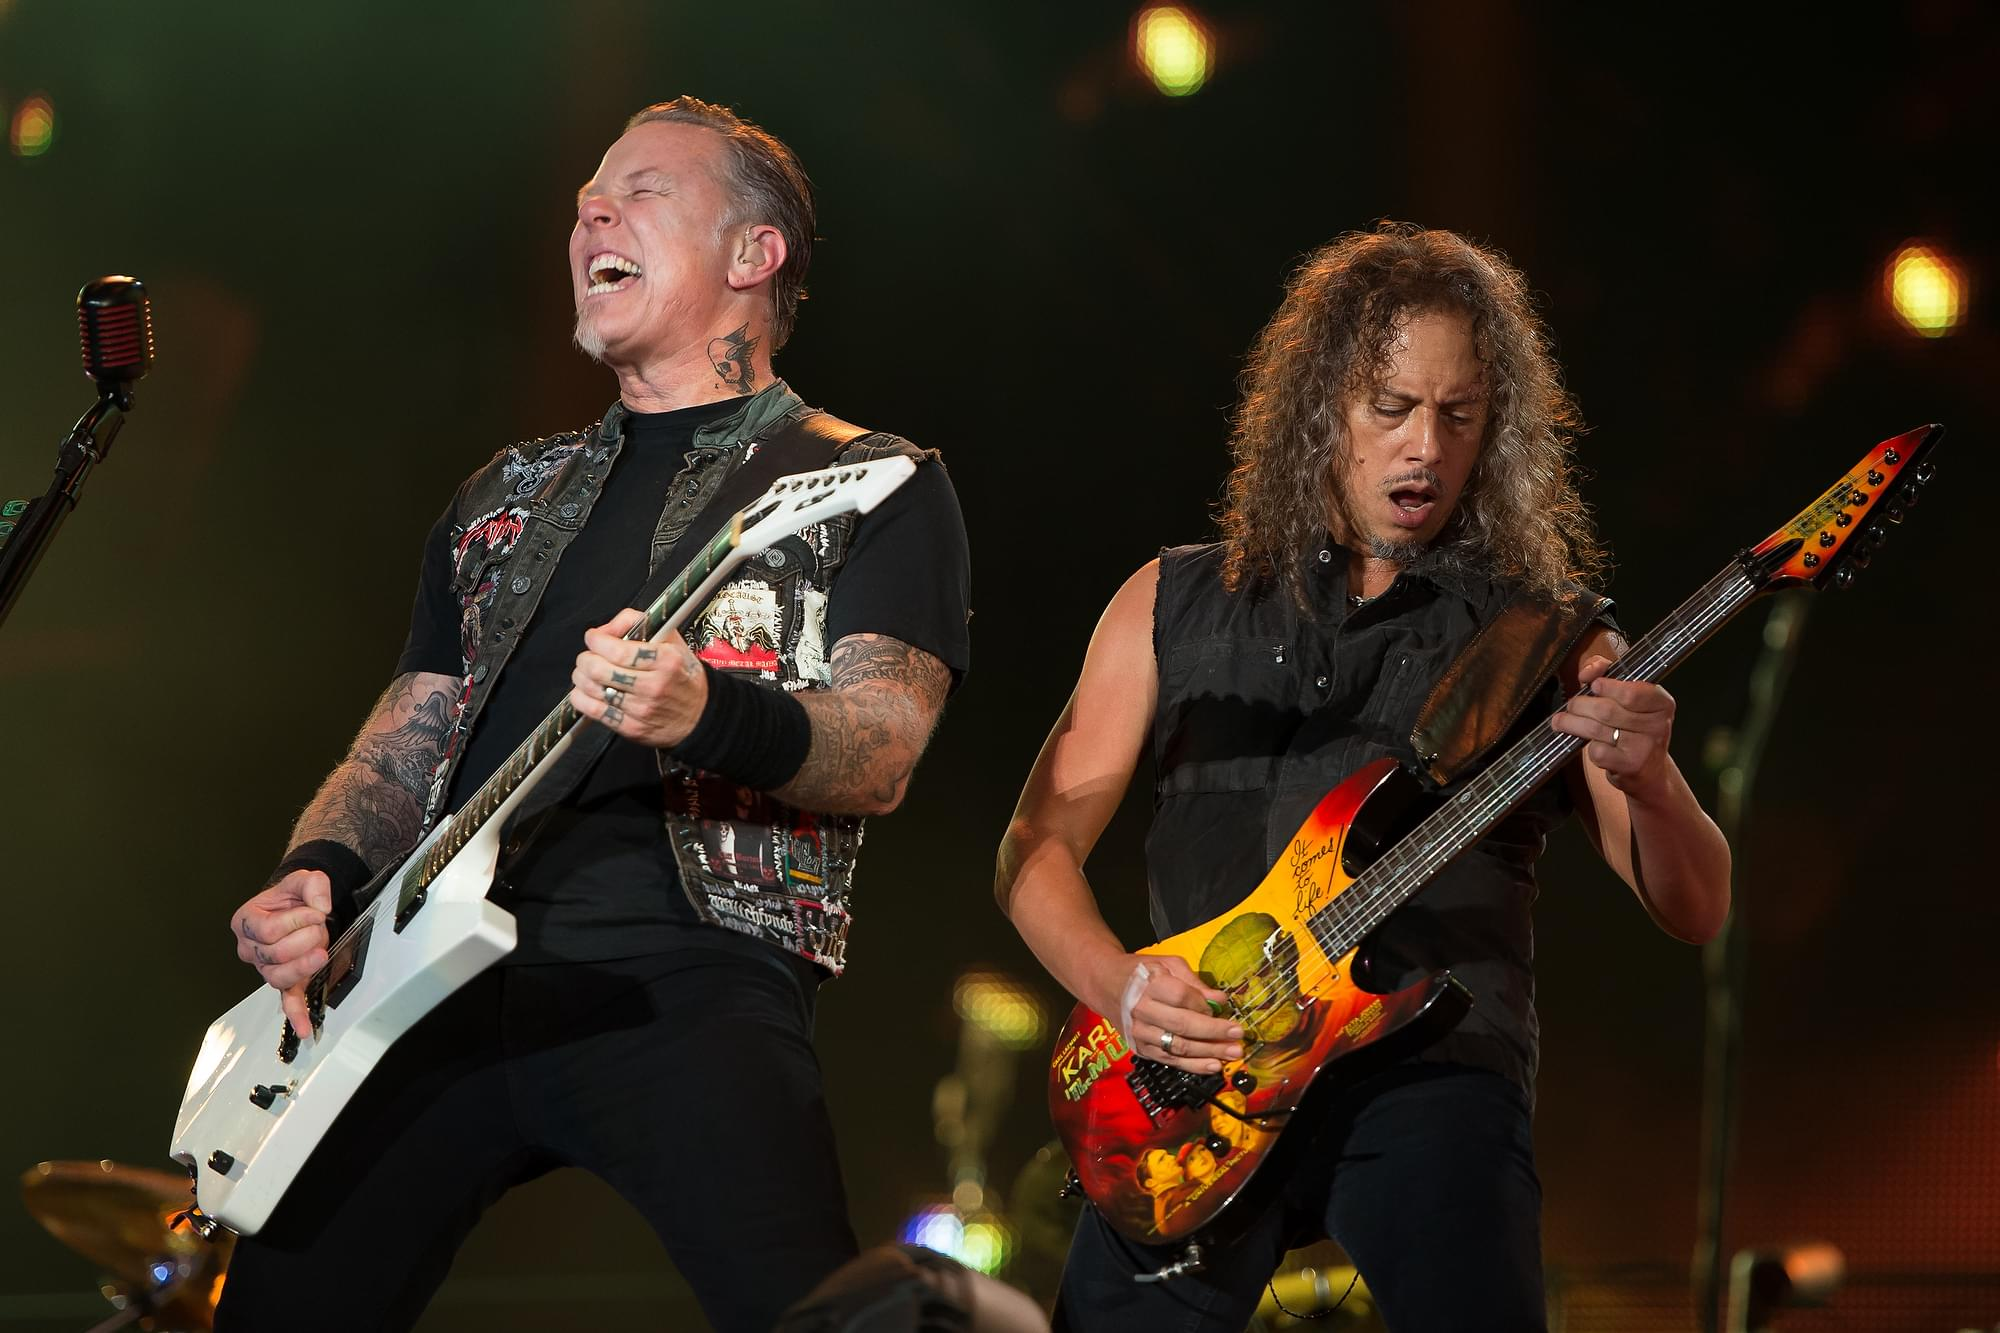 Watch Metallica Perform 'Would?' at Alice In Chains Tribute Concert [VIDEO]